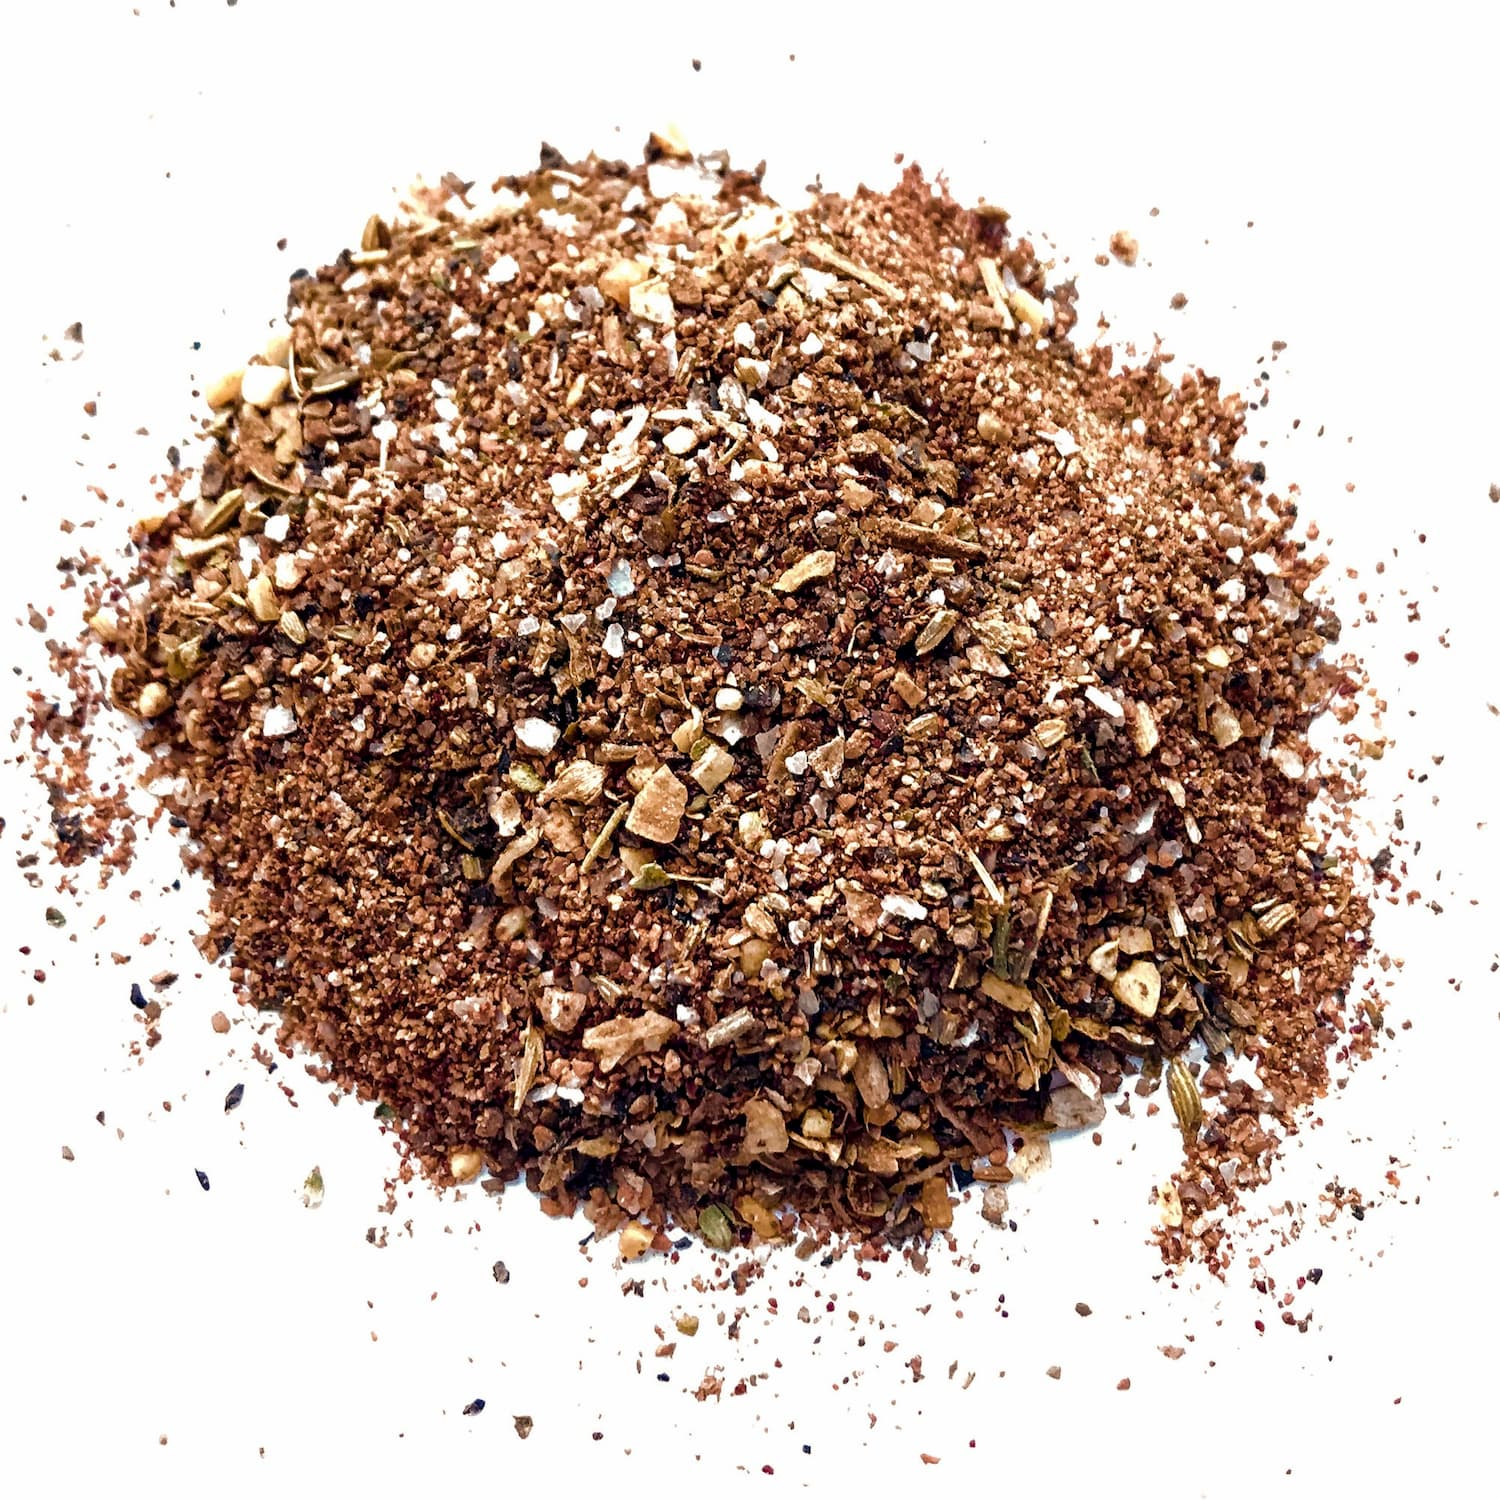 Abilene Depot Seasoning Ingredients.jpg